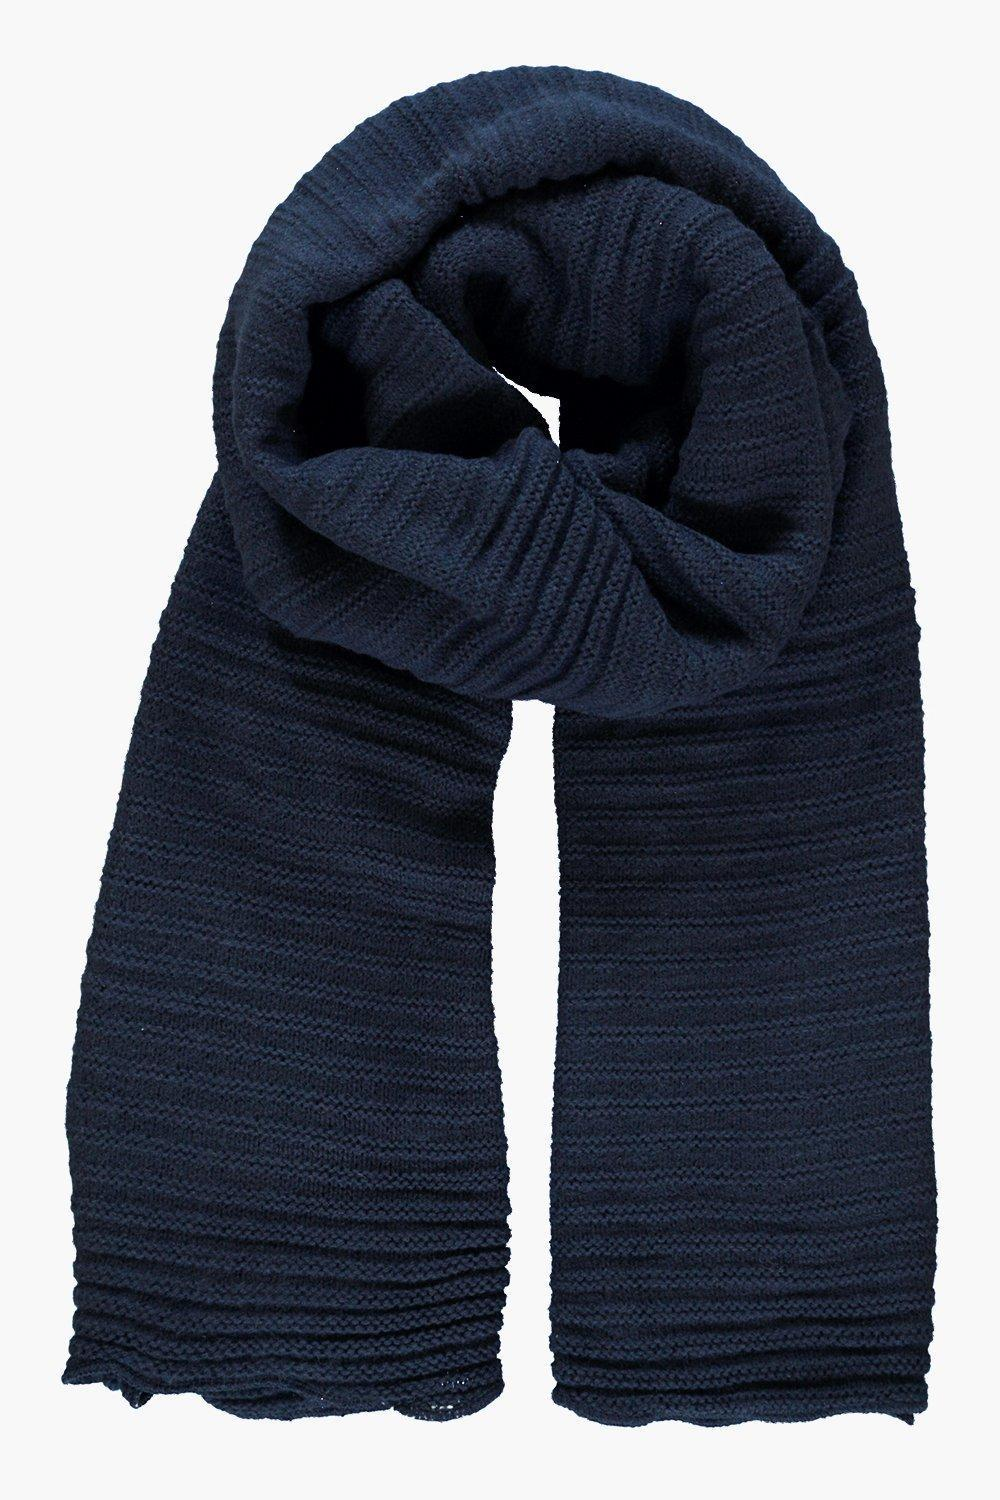 Super Chunky Rib Knit Scarf Indigo - predominant colour: gold; occasions: casual; type of pattern: standard; style: regular; size: standard; material: fabric; pattern: knit; season: a/w 2016